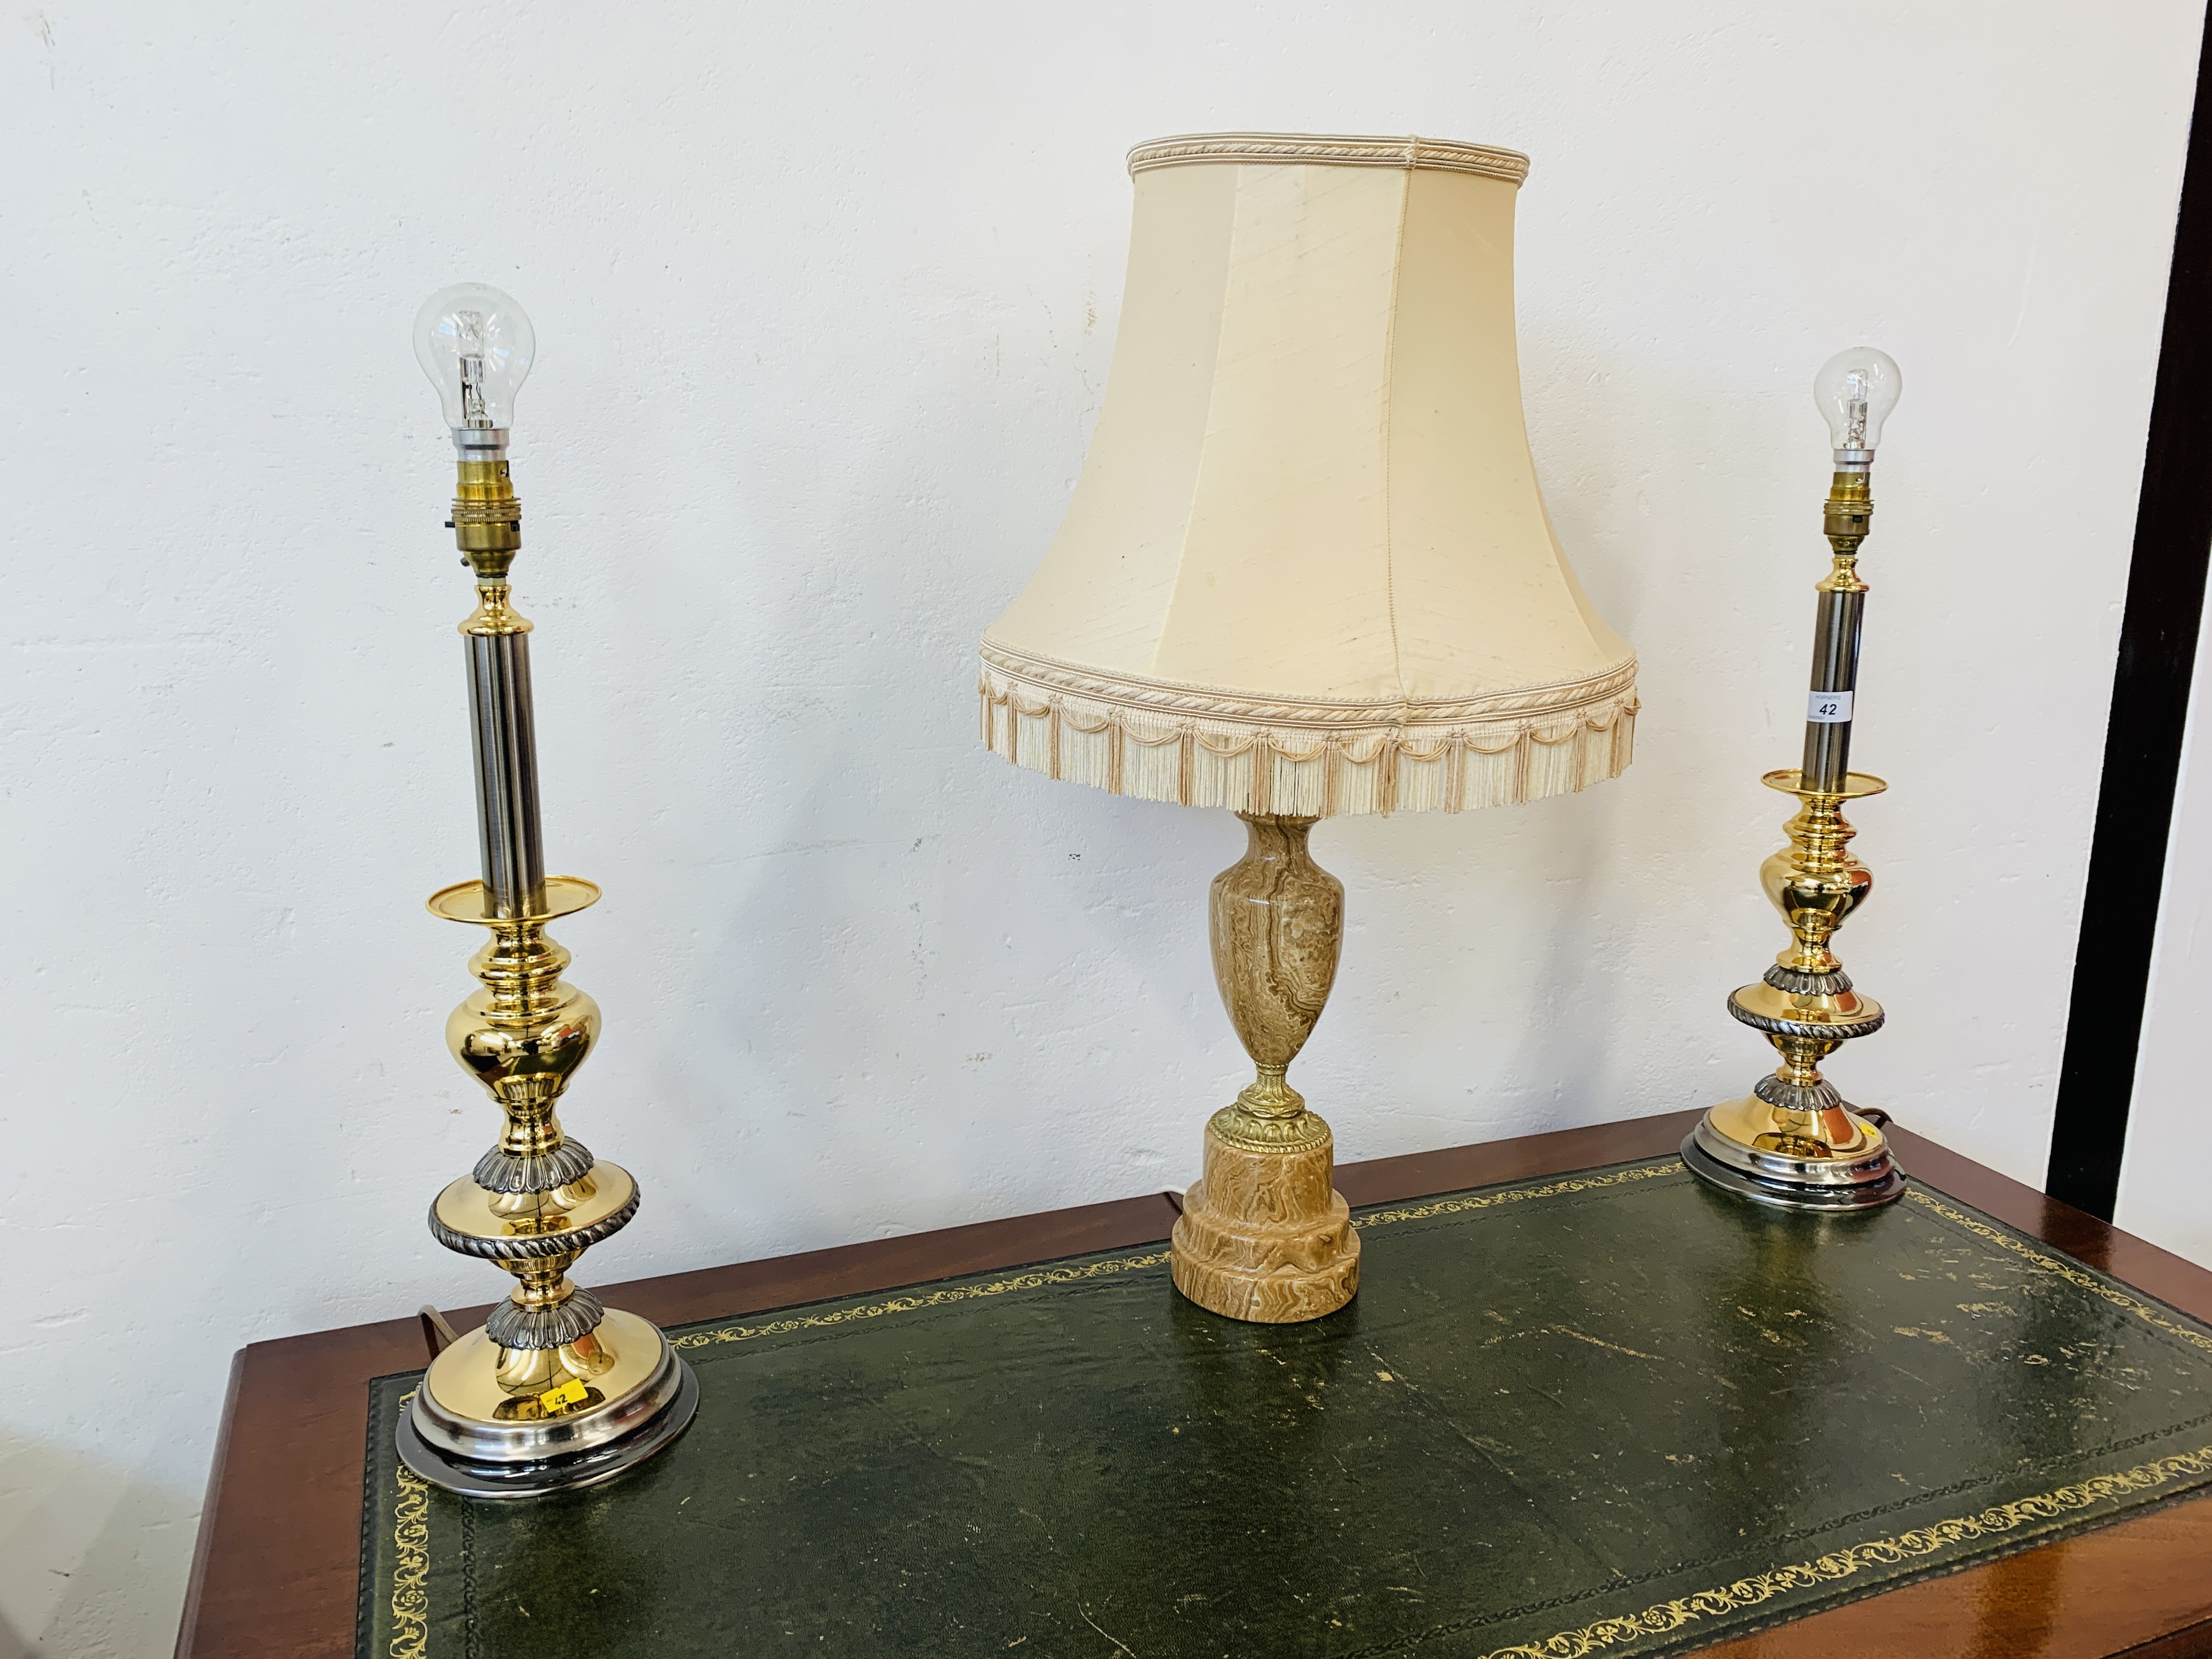 A GOOD QUALITY MARBLE TABLE LAMP ALONG WITH A PAIR OF MODERN POLISHED METAL TABLE LAMPS - SOLD AS - Image 12 of 12